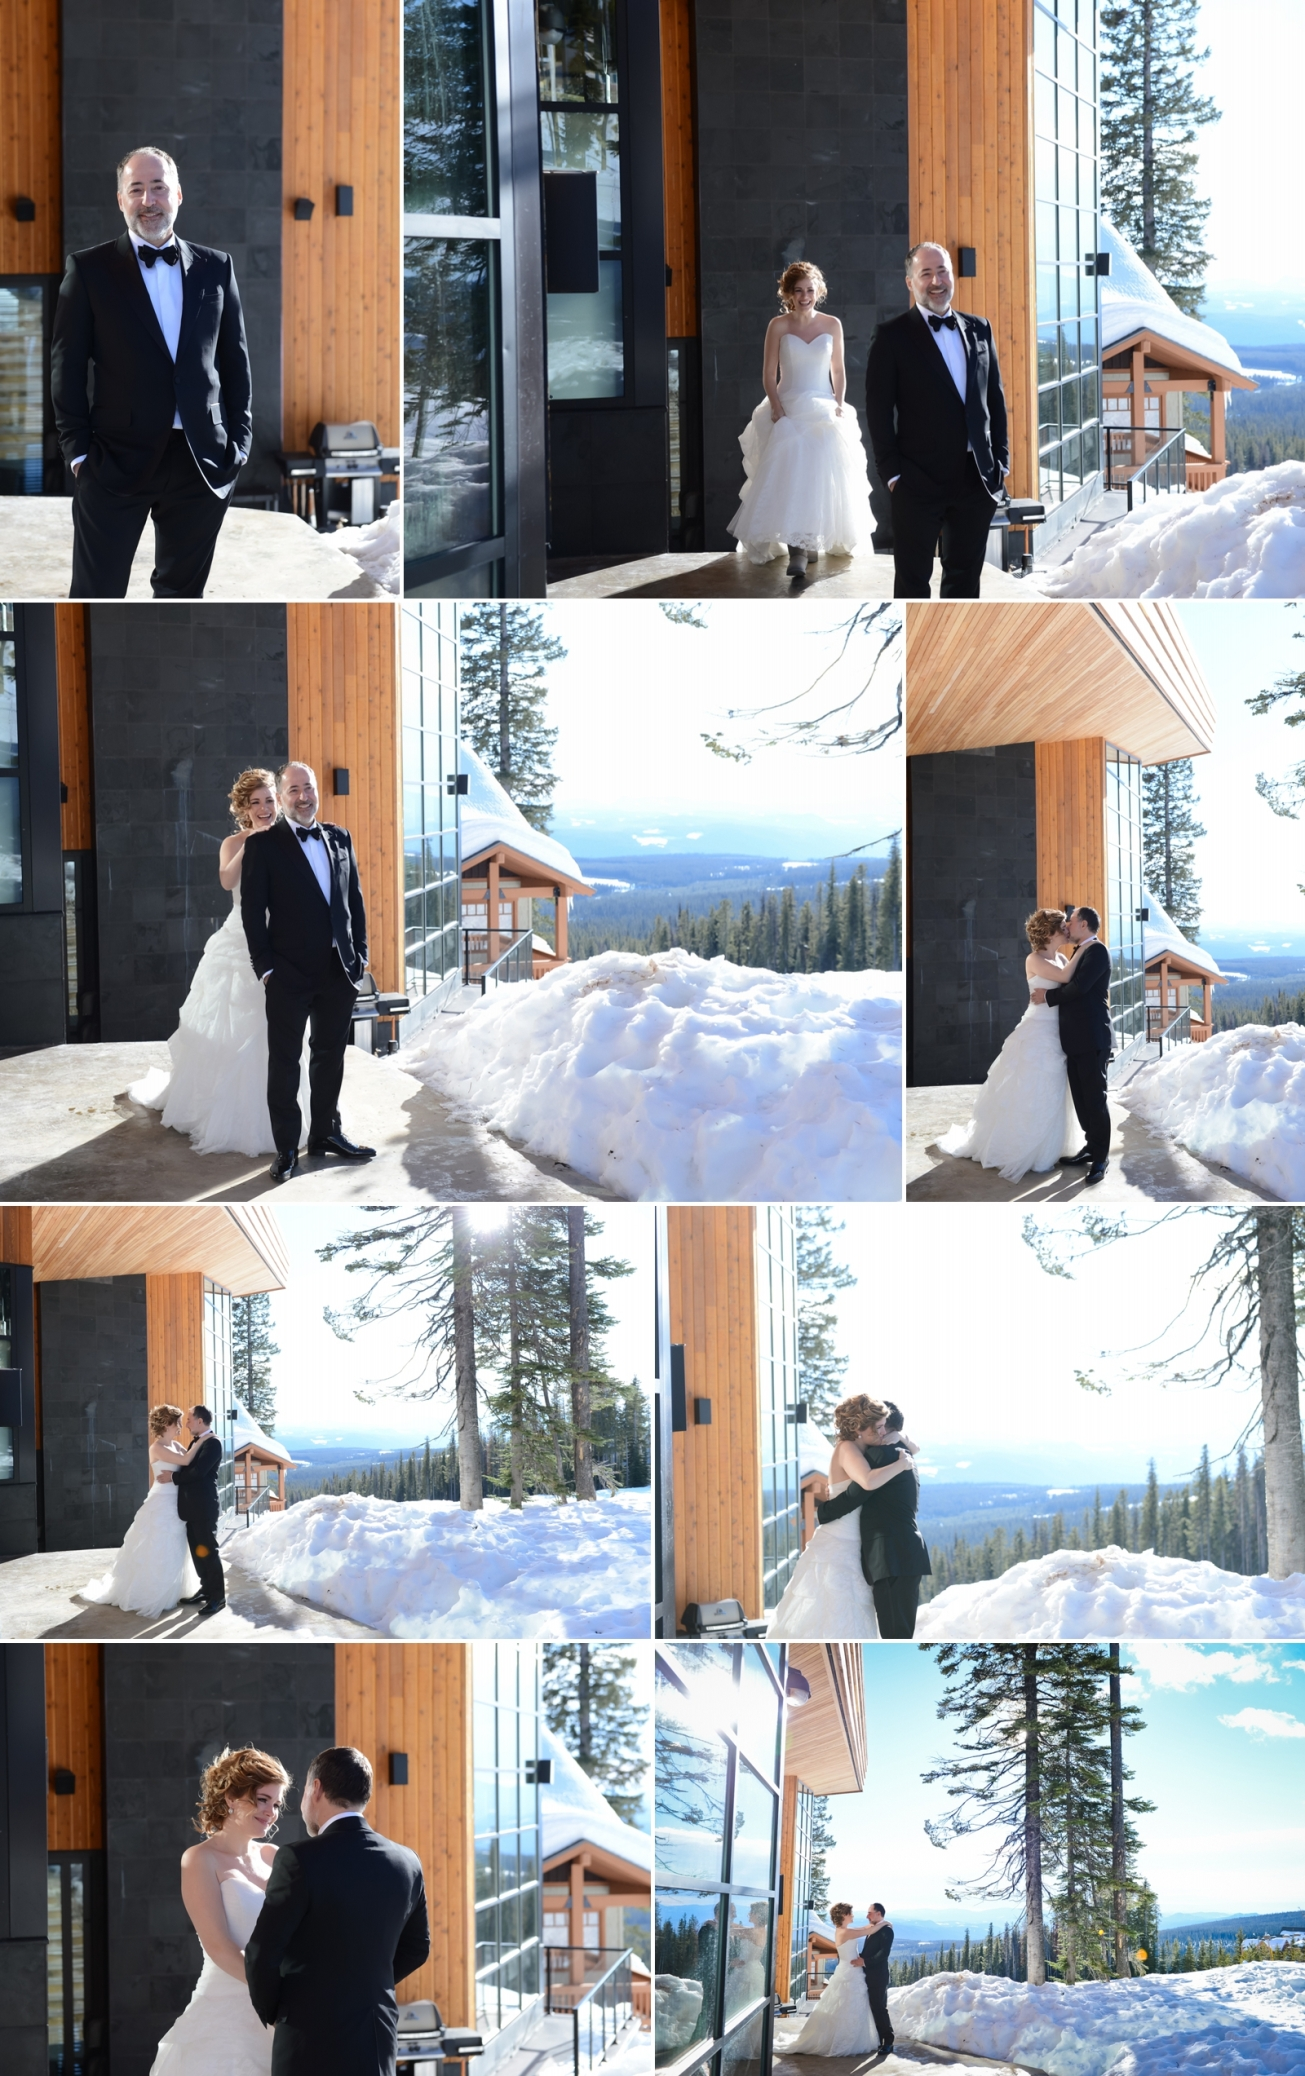 Big White Wedding - Kelowna Okanagan - Suzanne Le Stage 3